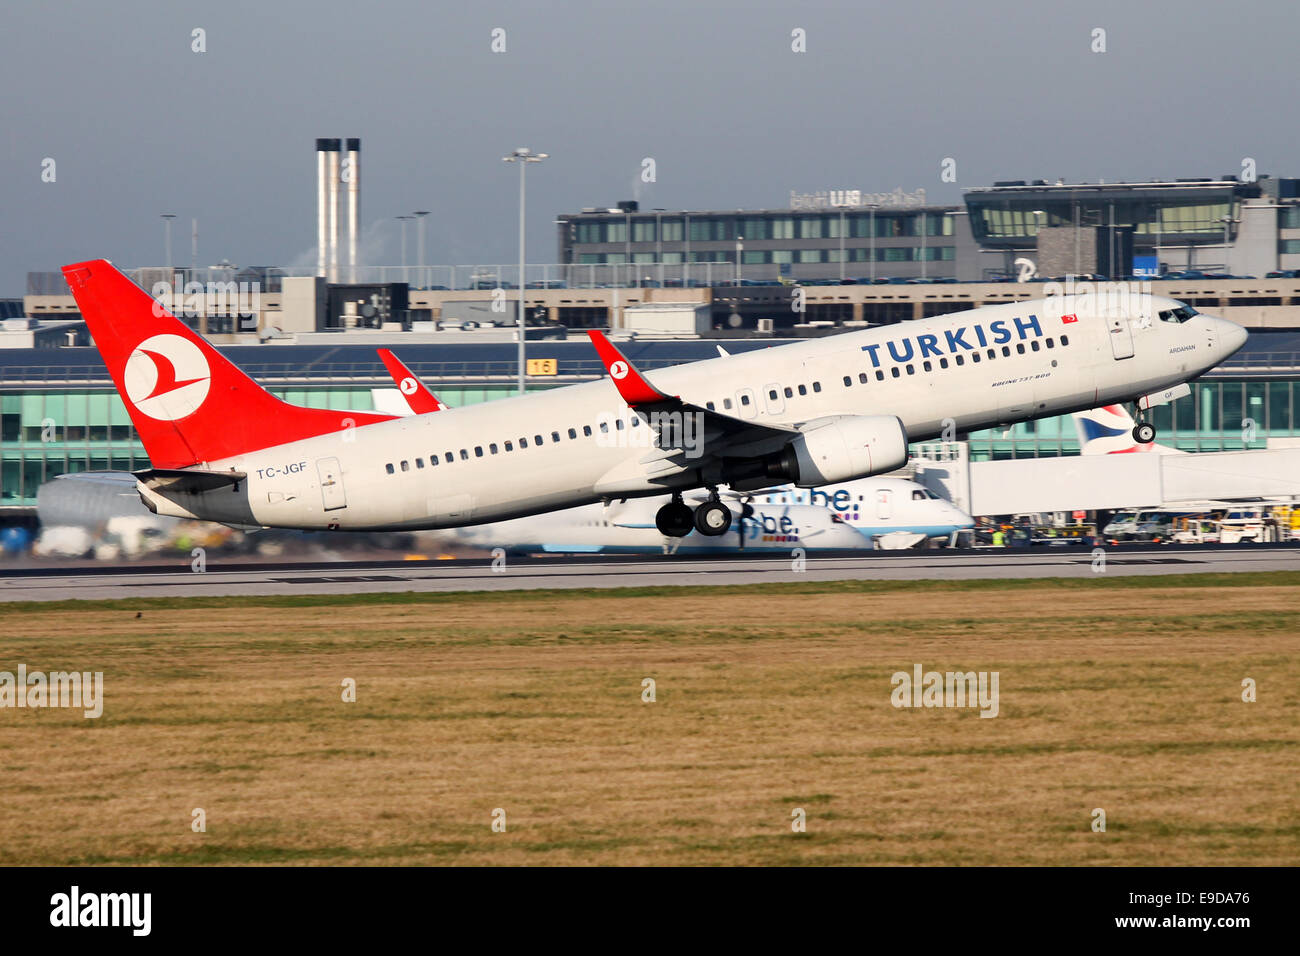 Turkish Airlines Boeing 737-800 rotates from runway 05L at Manchester airport. - Stock Image